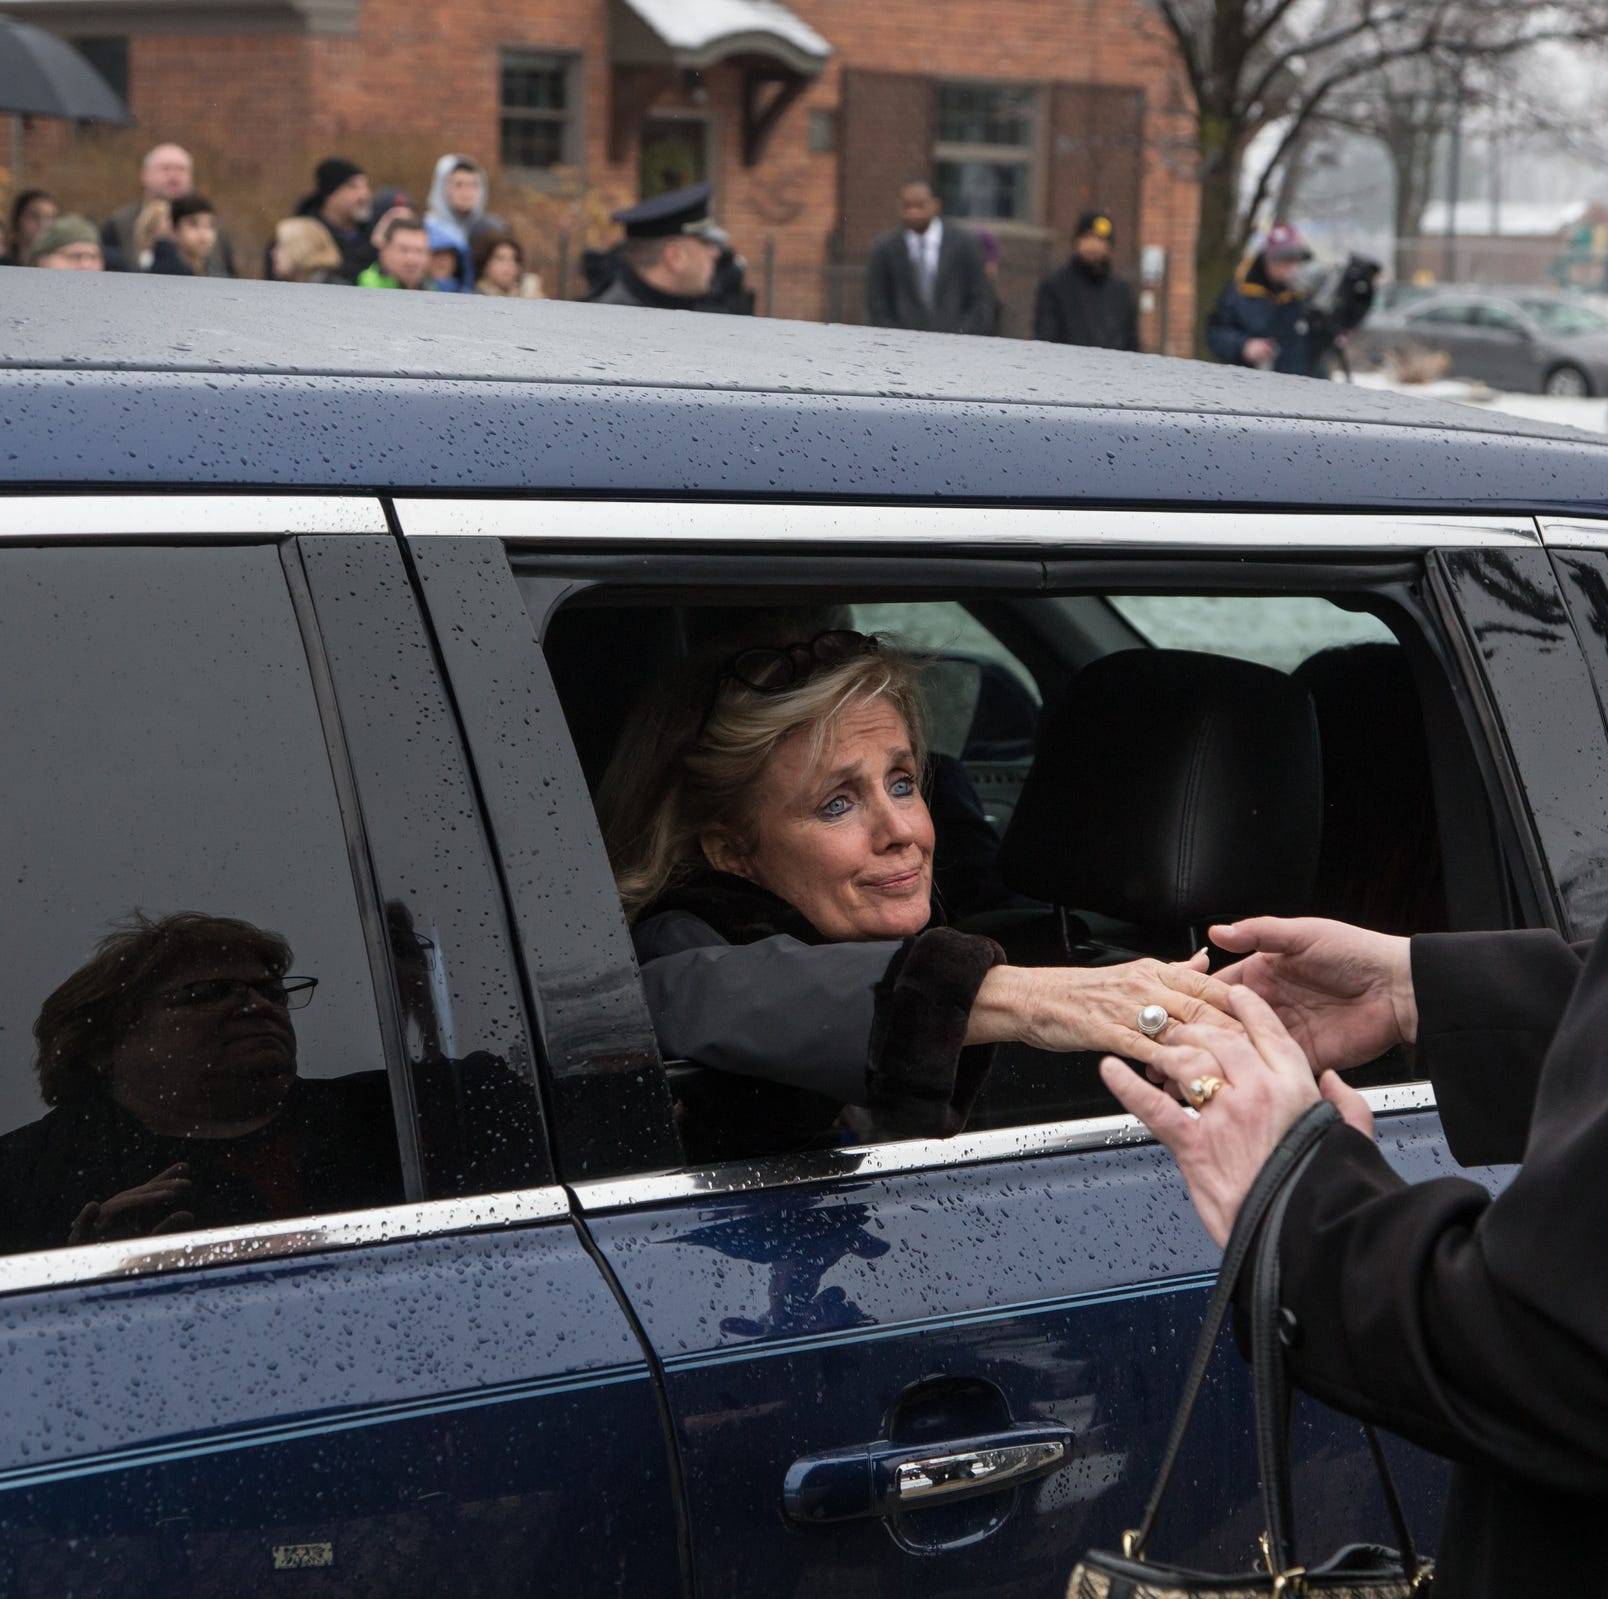 Emotional Debbie Dingell offers thanks, reflections after husband's burial